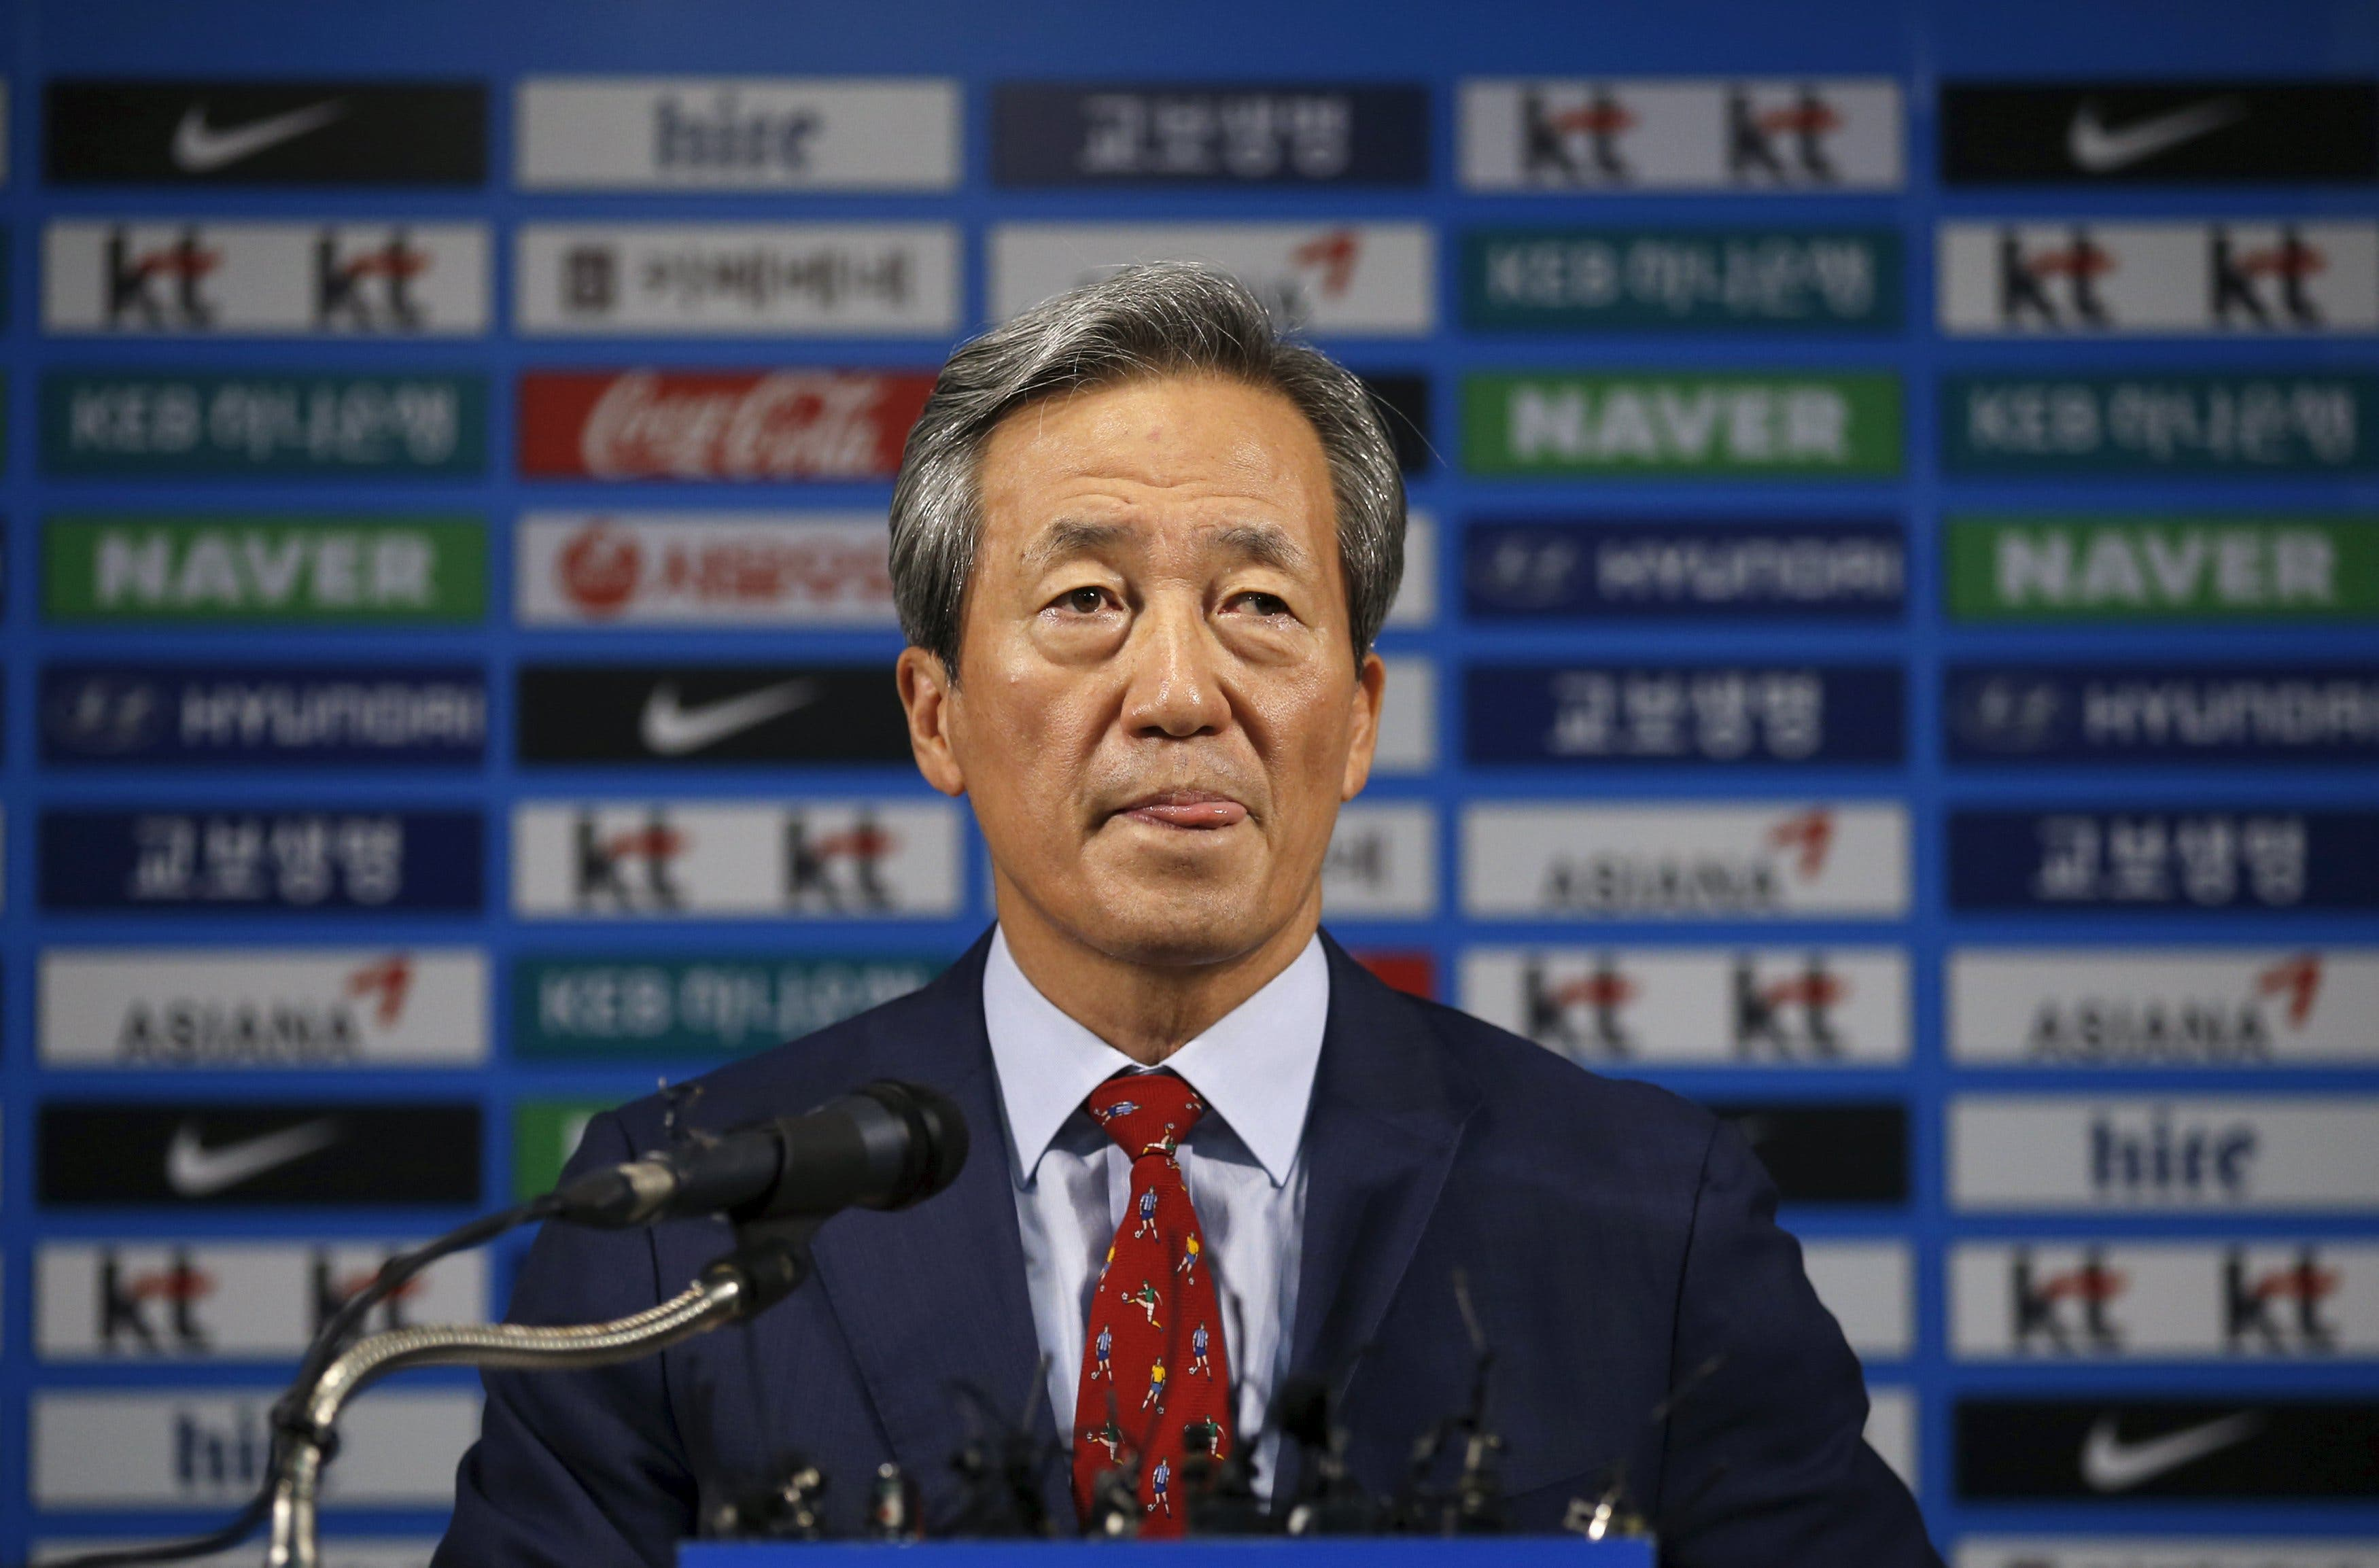 FIFA presidential candidate Chung Mong-joon speaks during a news conference in Seoul, South Korea, September 3, 2015. reuters